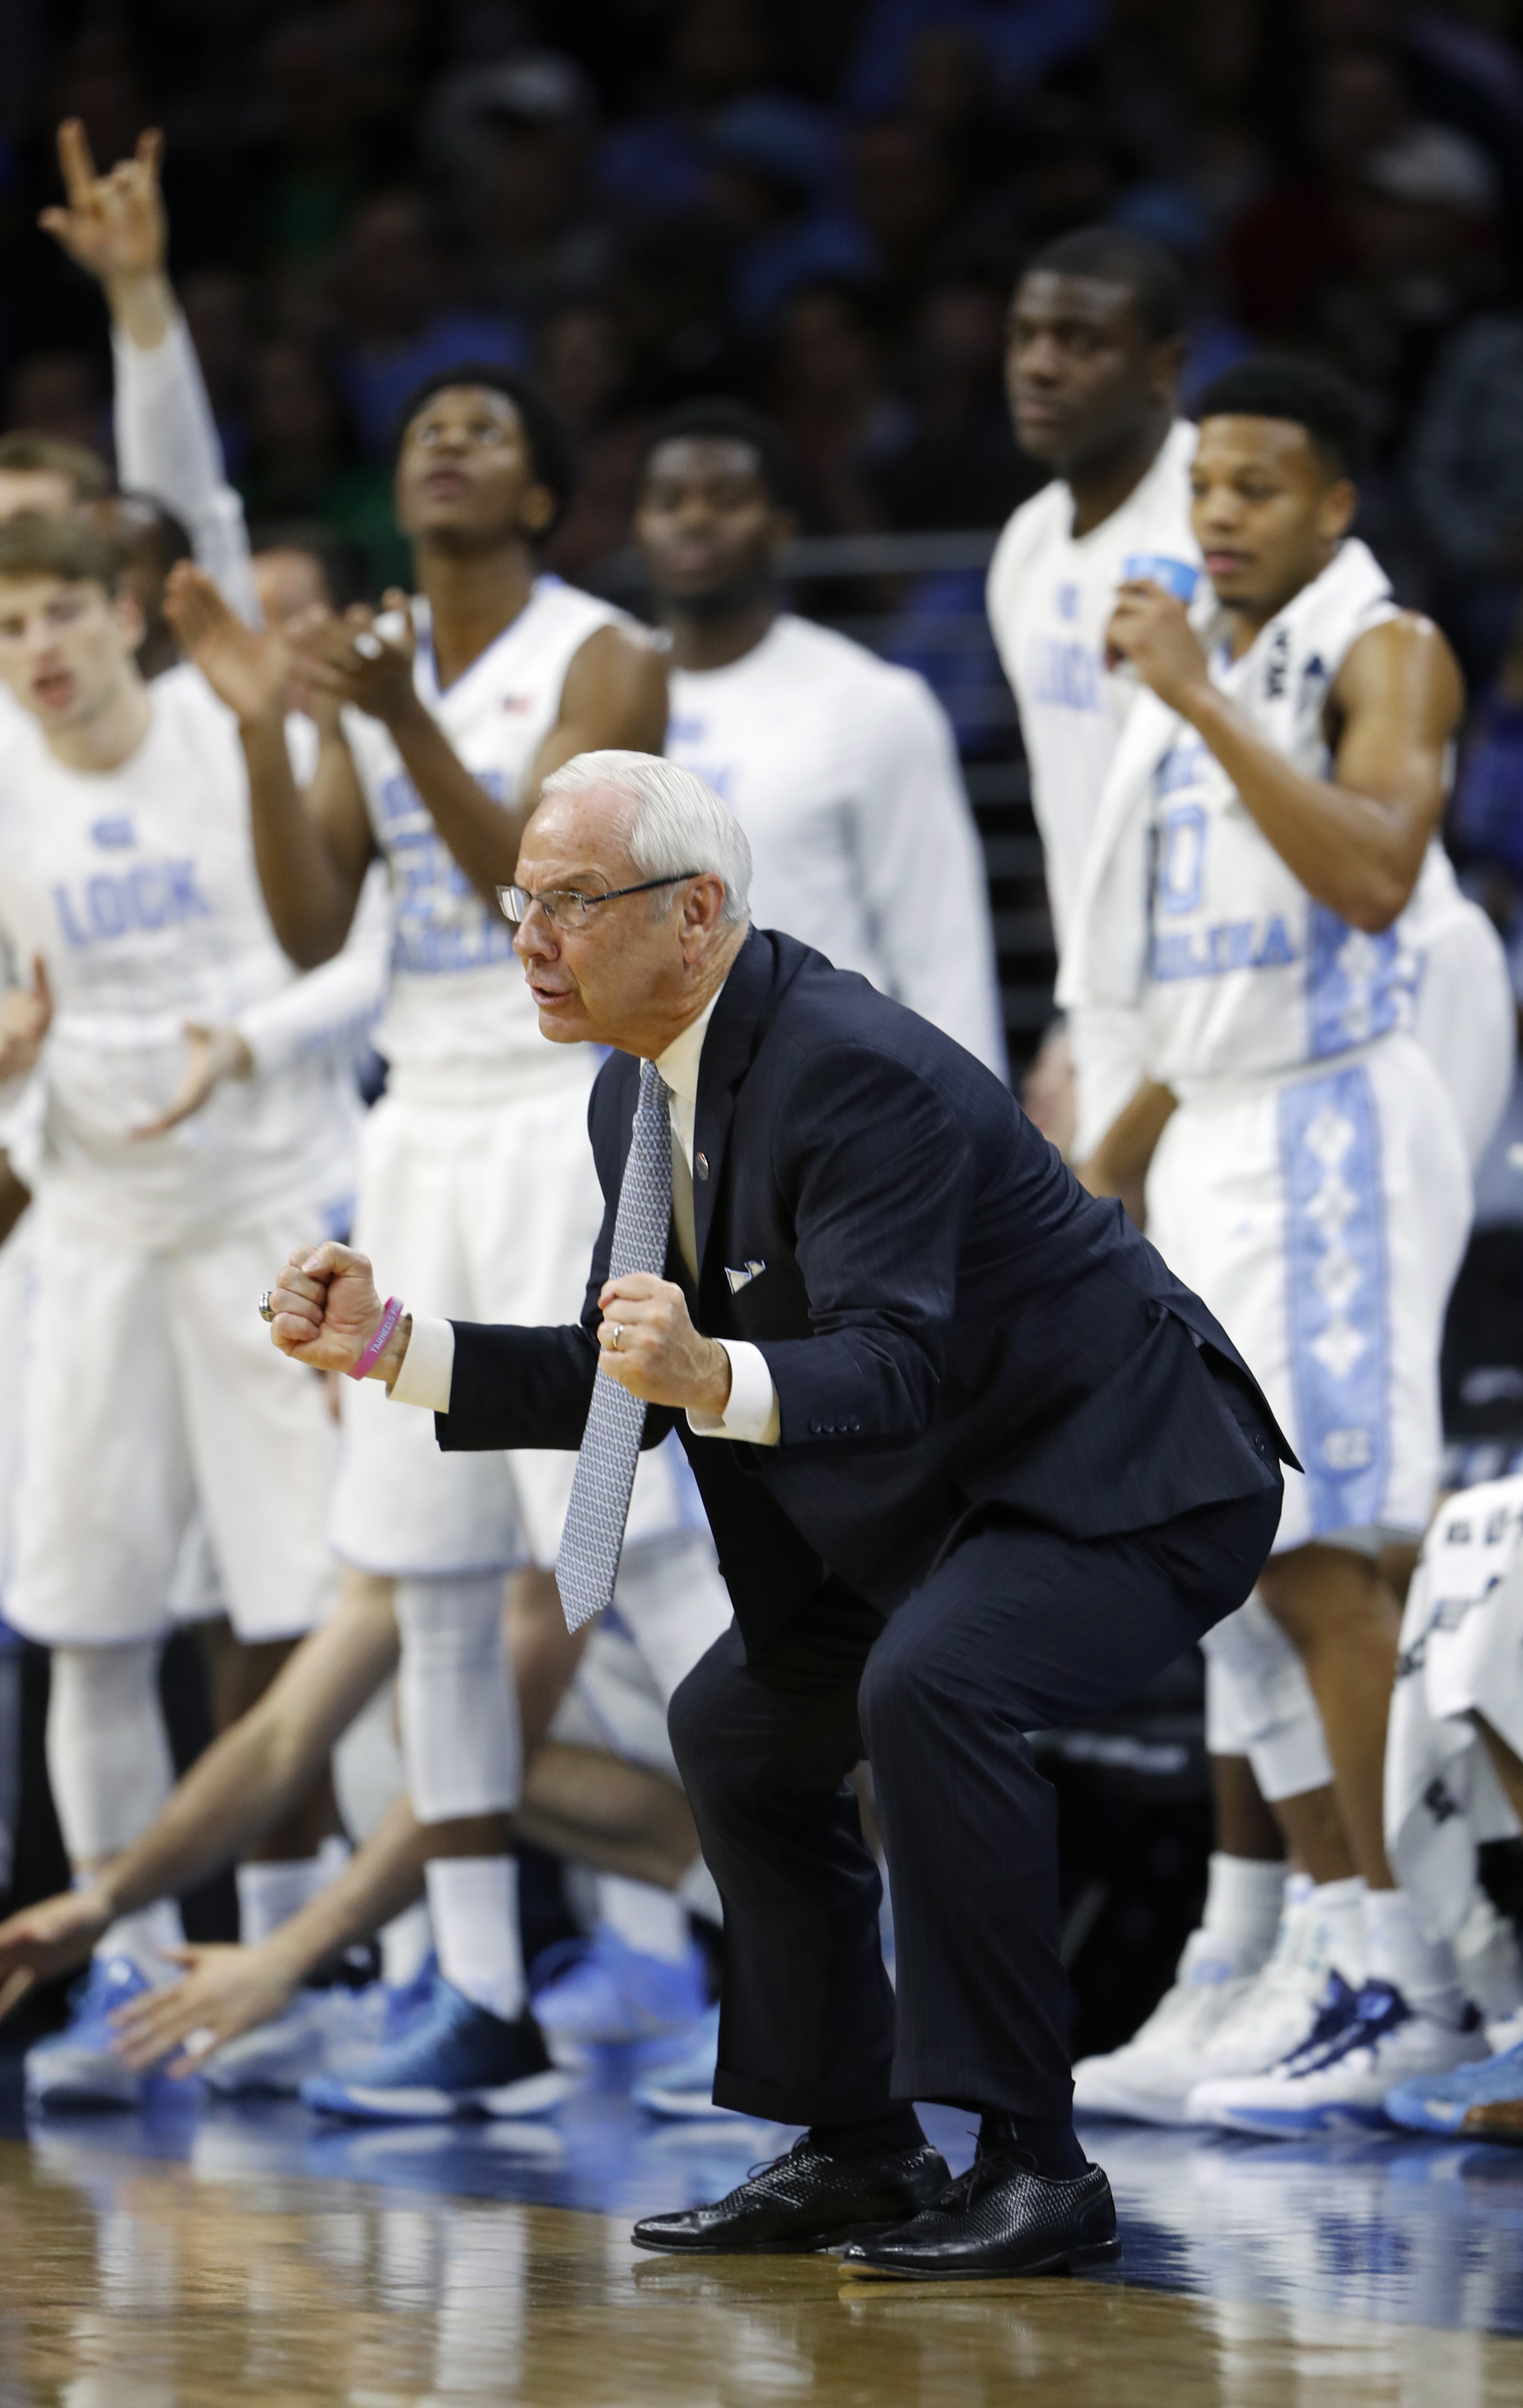 North Carolina head coach Roy Williams reacts during the second half of a regional final men's college basketball game against Notre Dame in the NCAA Tournament, Sunday, March 27, 2016, in Philadelphia. (AP Photo/Matt Rourke)